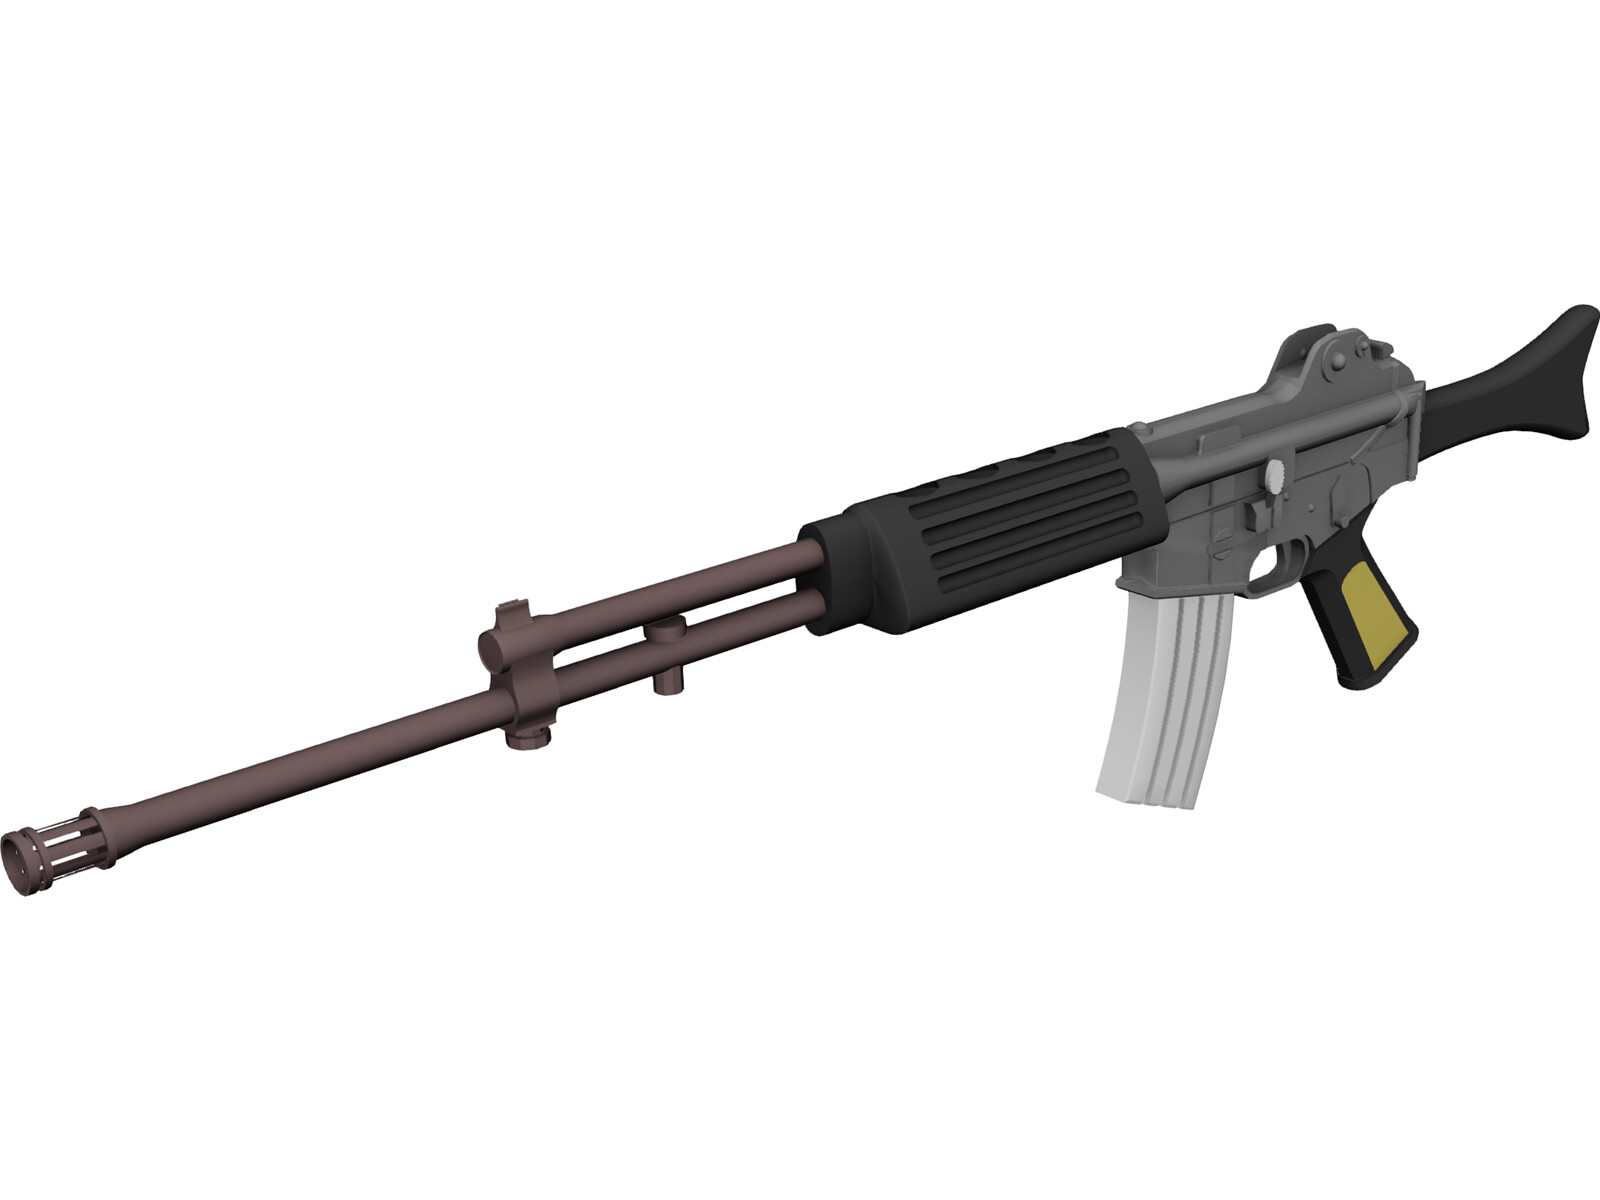 K2 Rifle 3D Model - 3D CAD Browser